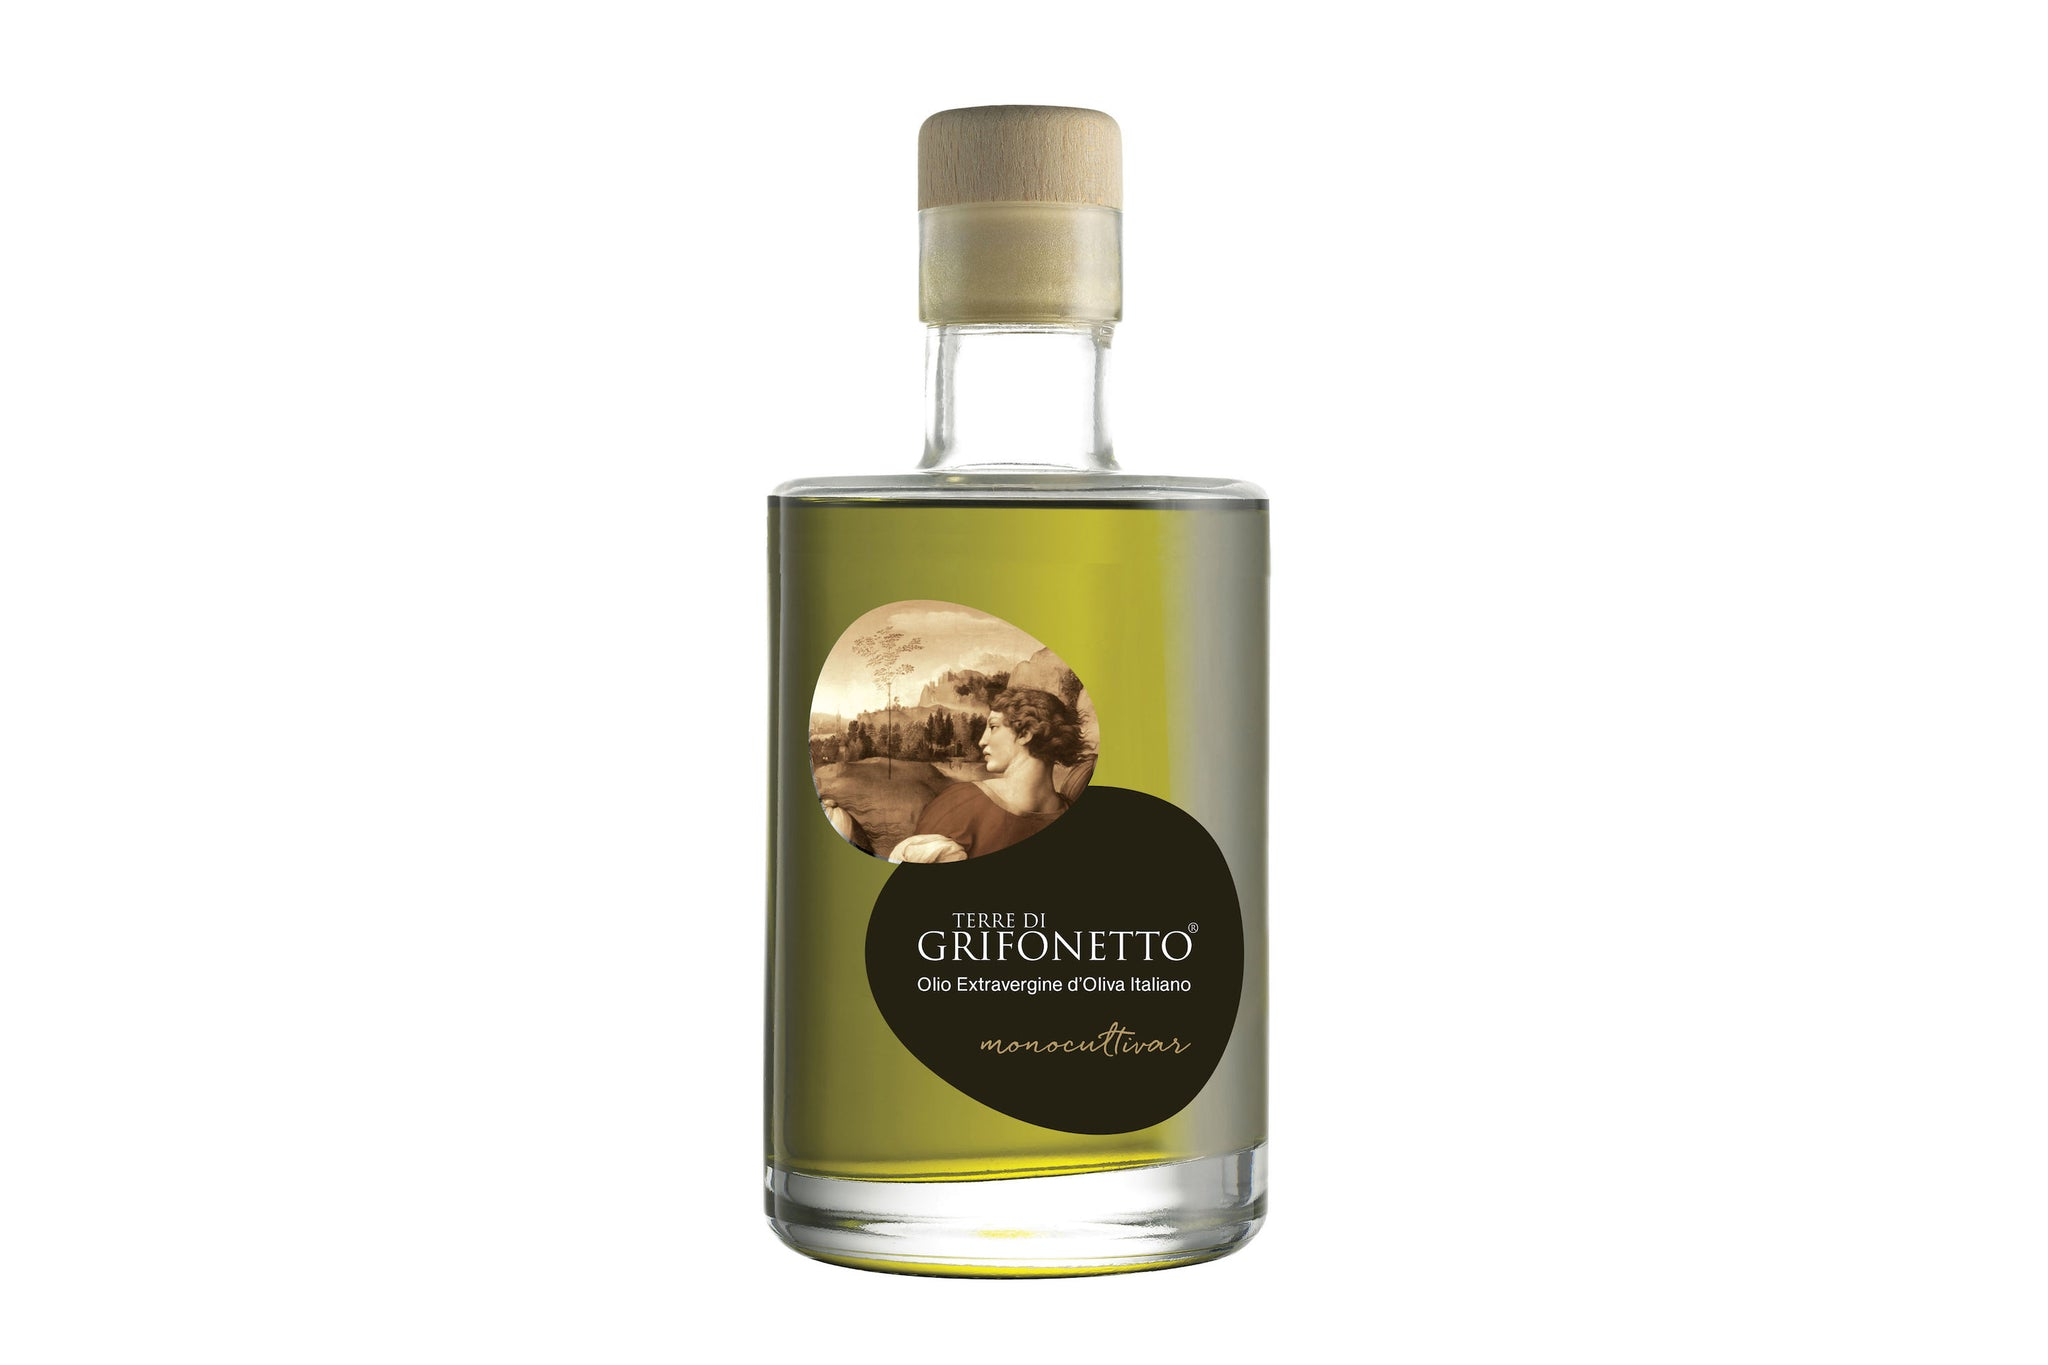 Terre di Grifonetto Dolce Agogia Extra Virgin Olive Oil - Shop authentic Italian products on the Red Beetle